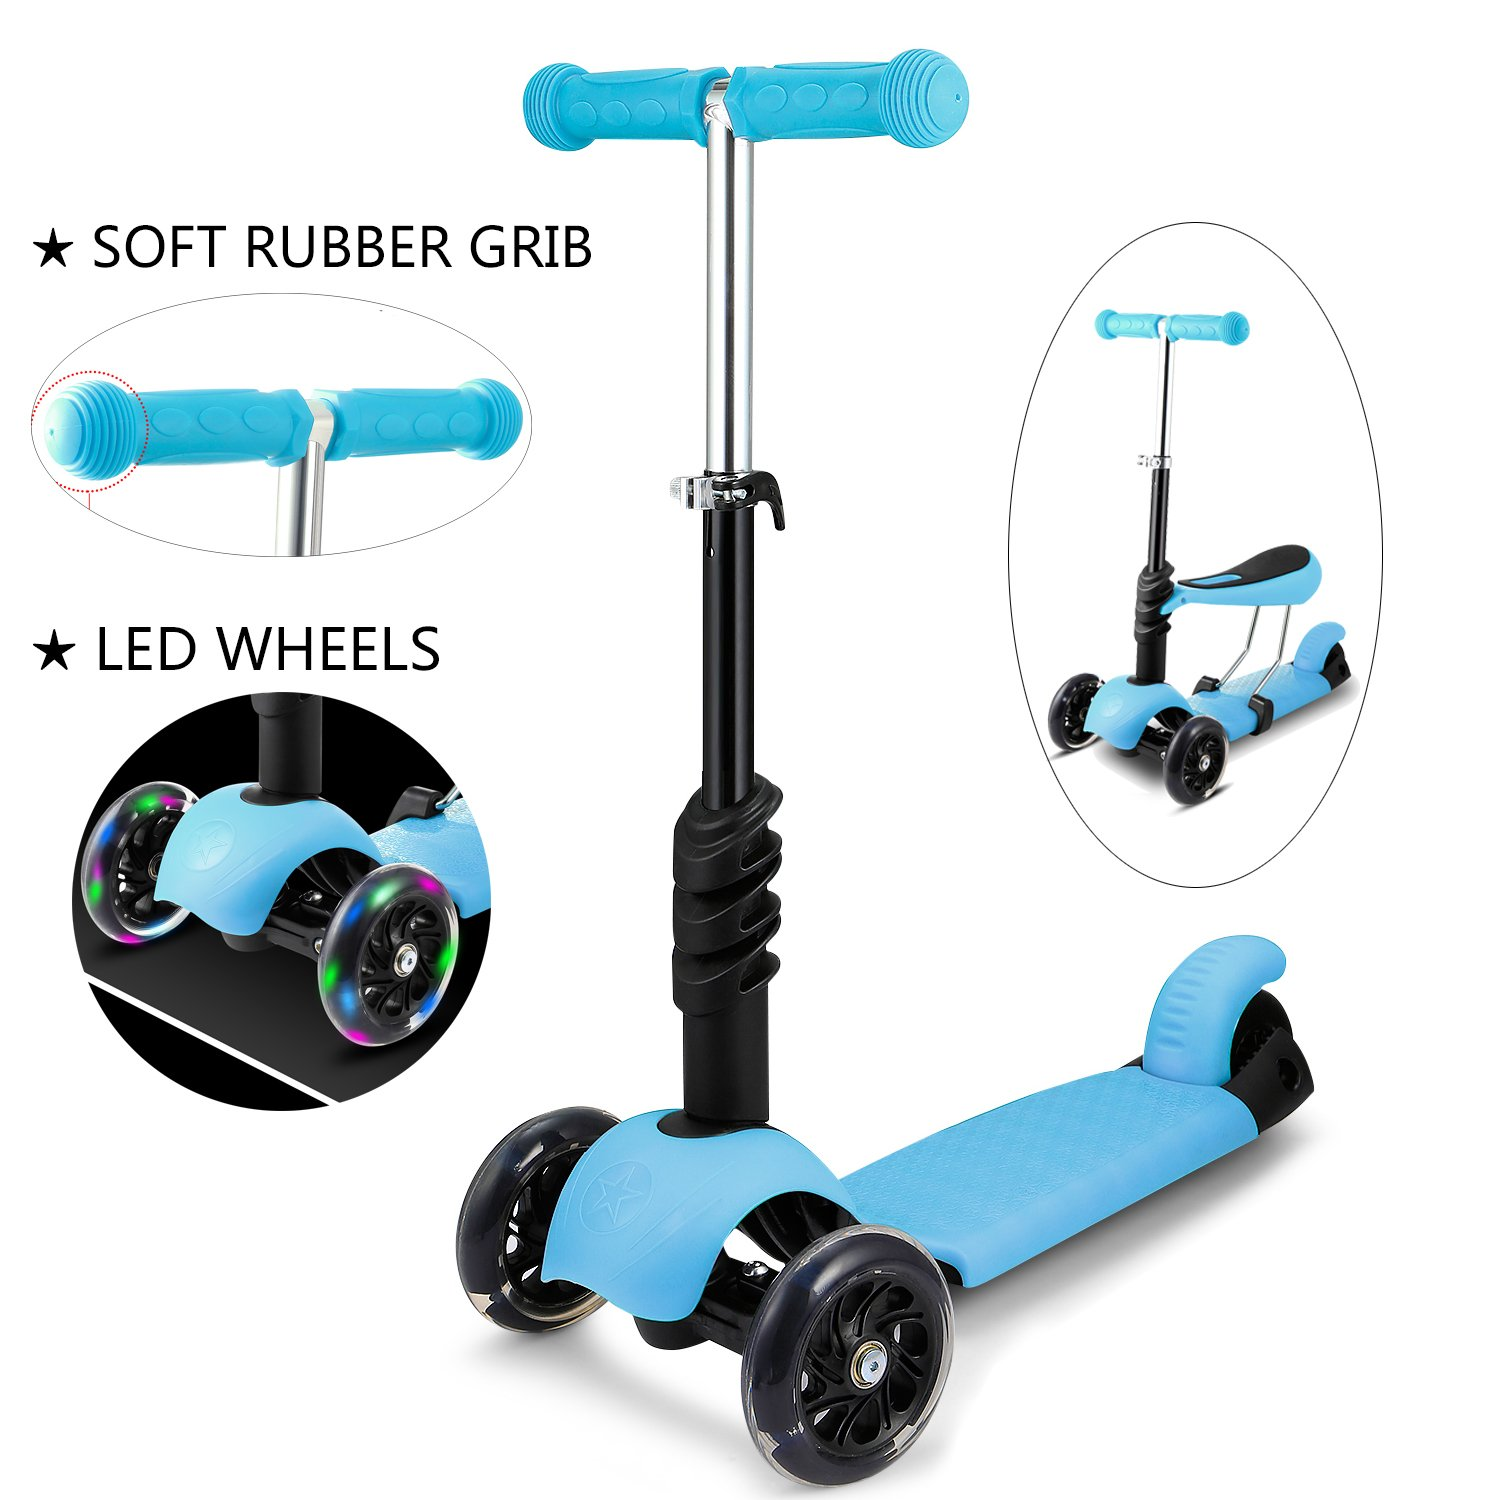 shaofu 3-in-1 Toddler Scooter, 3-Wheel Mini Kick Scooter with LED Light Up Wheels, Adjustable Handlebar and Removable Seat for Children(US STOCK)